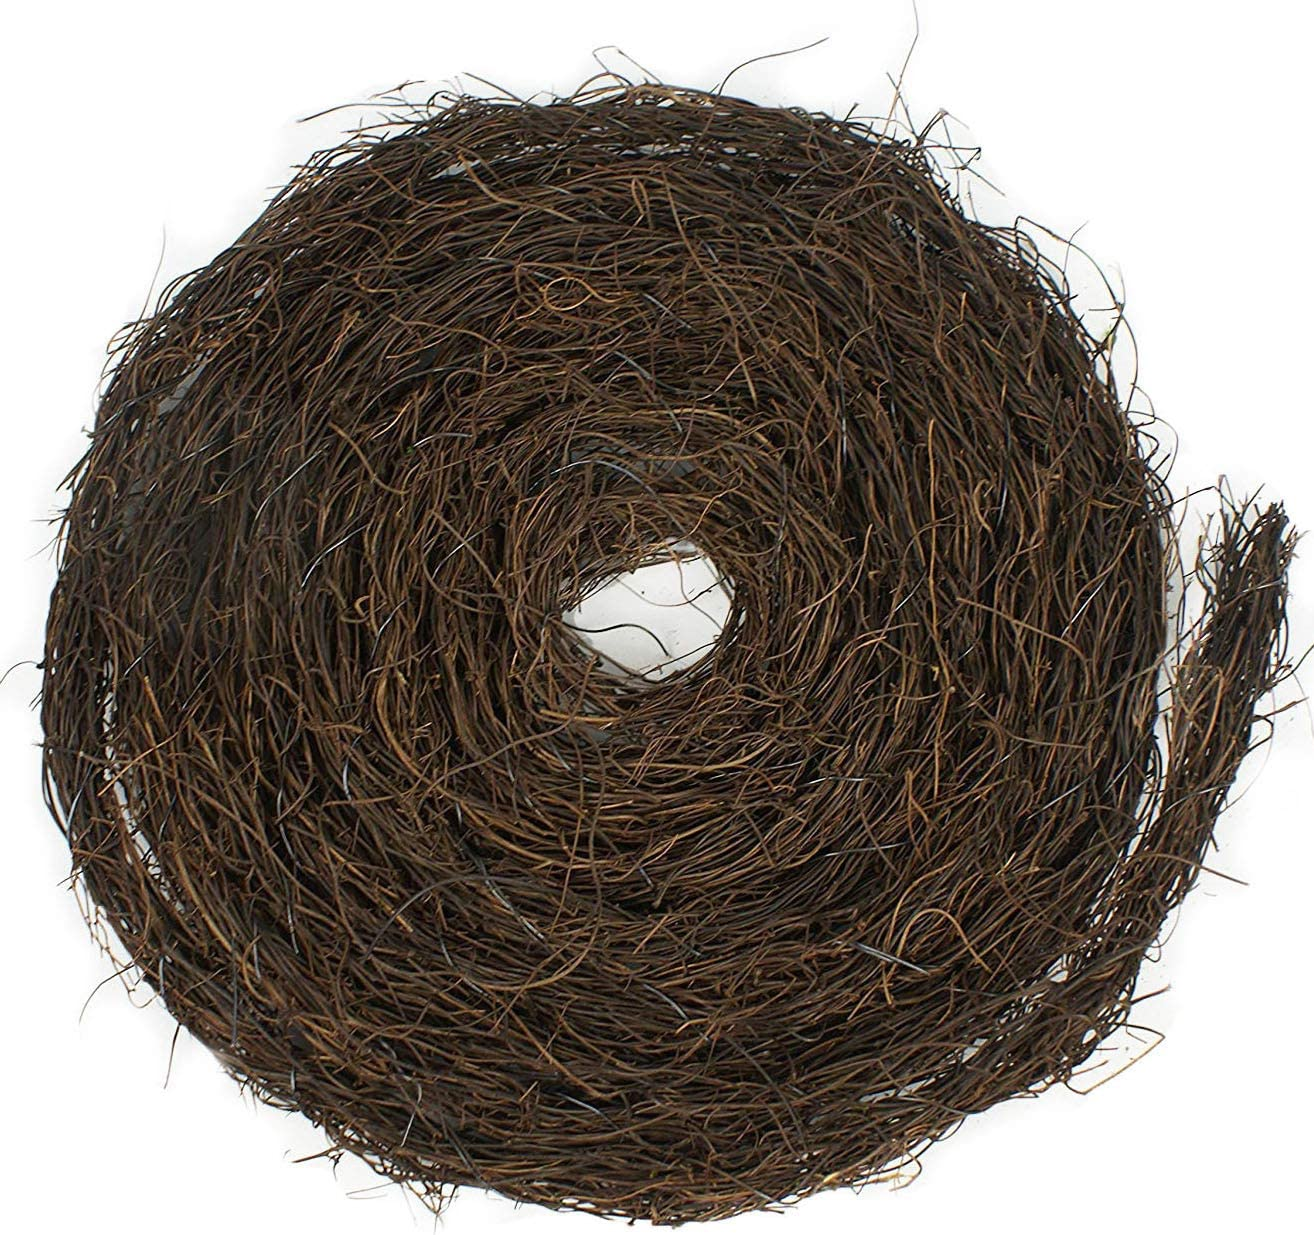 Delicaft 13 Ft Roll of Dried Natural Grapevine Garland